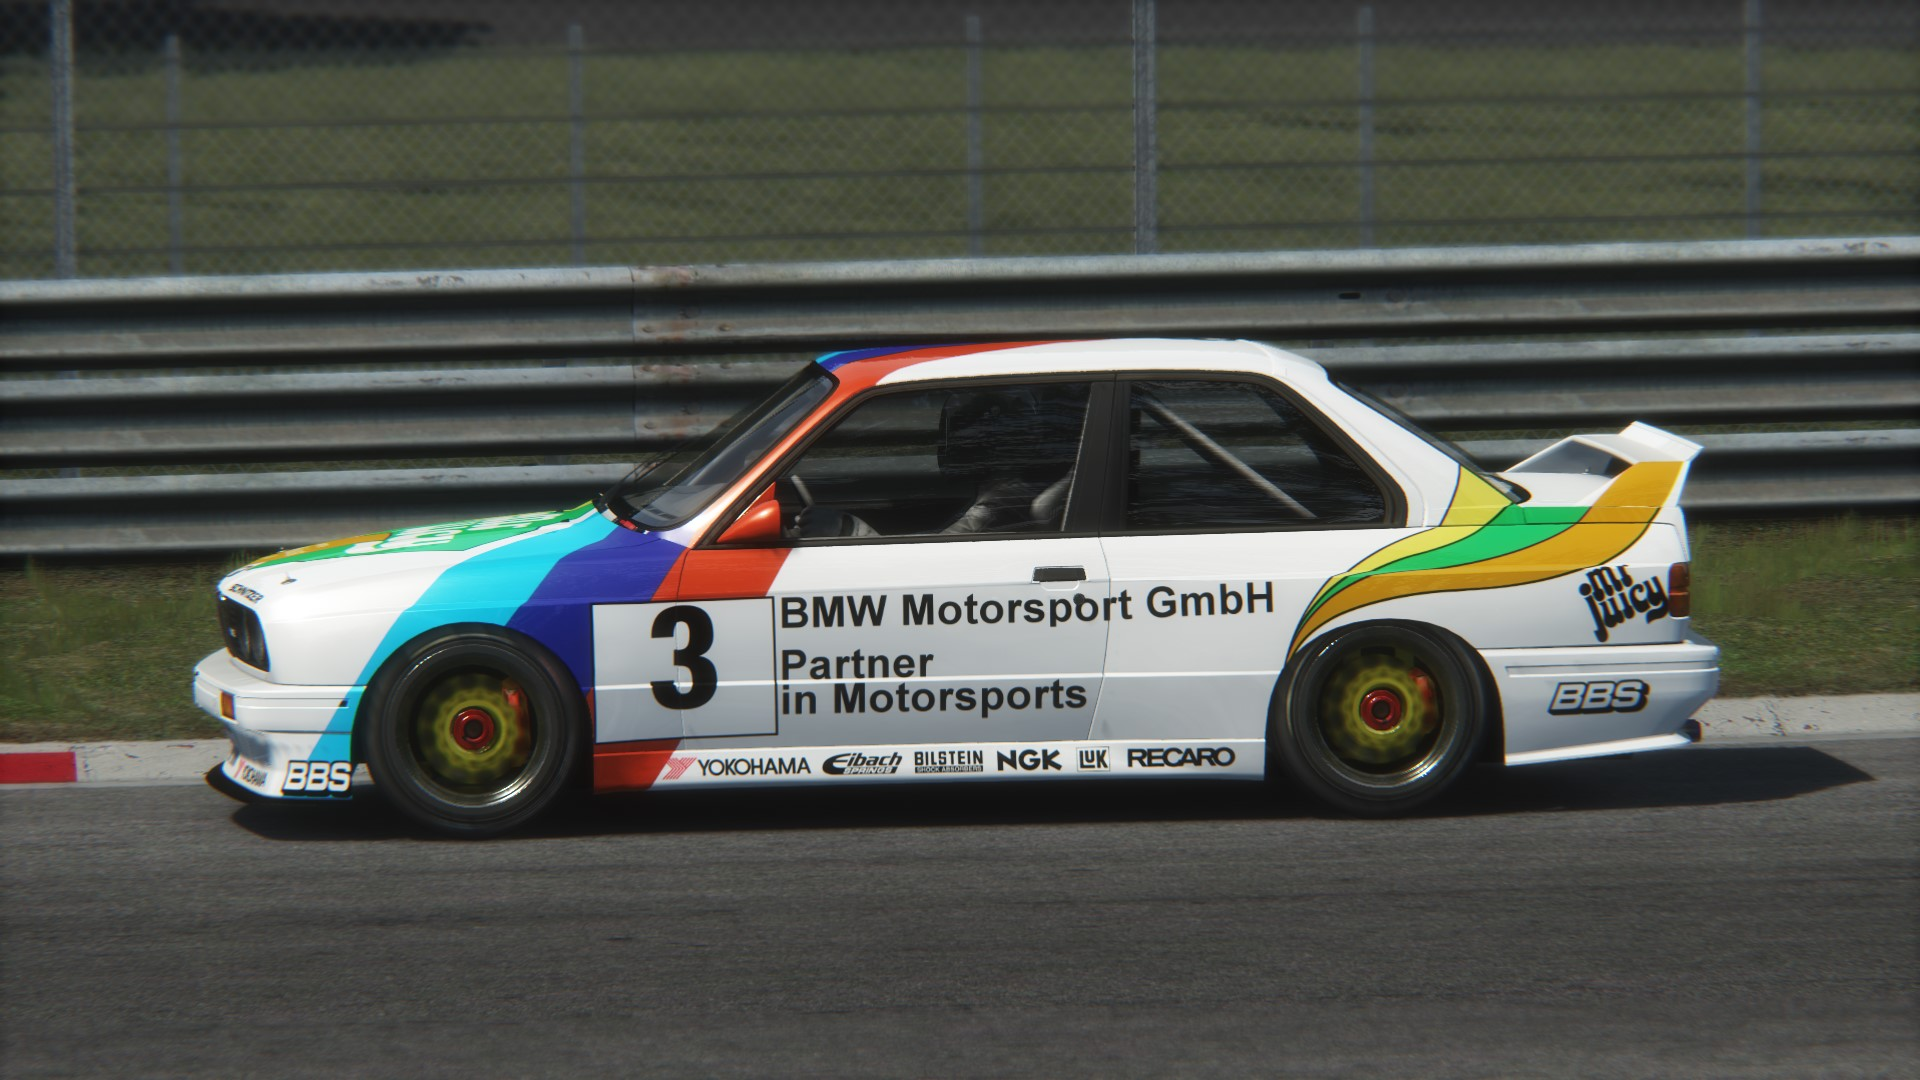 Screenshot_bmw_m3_e30_dtm_monza_13-1-2015-19-51-35.jpg